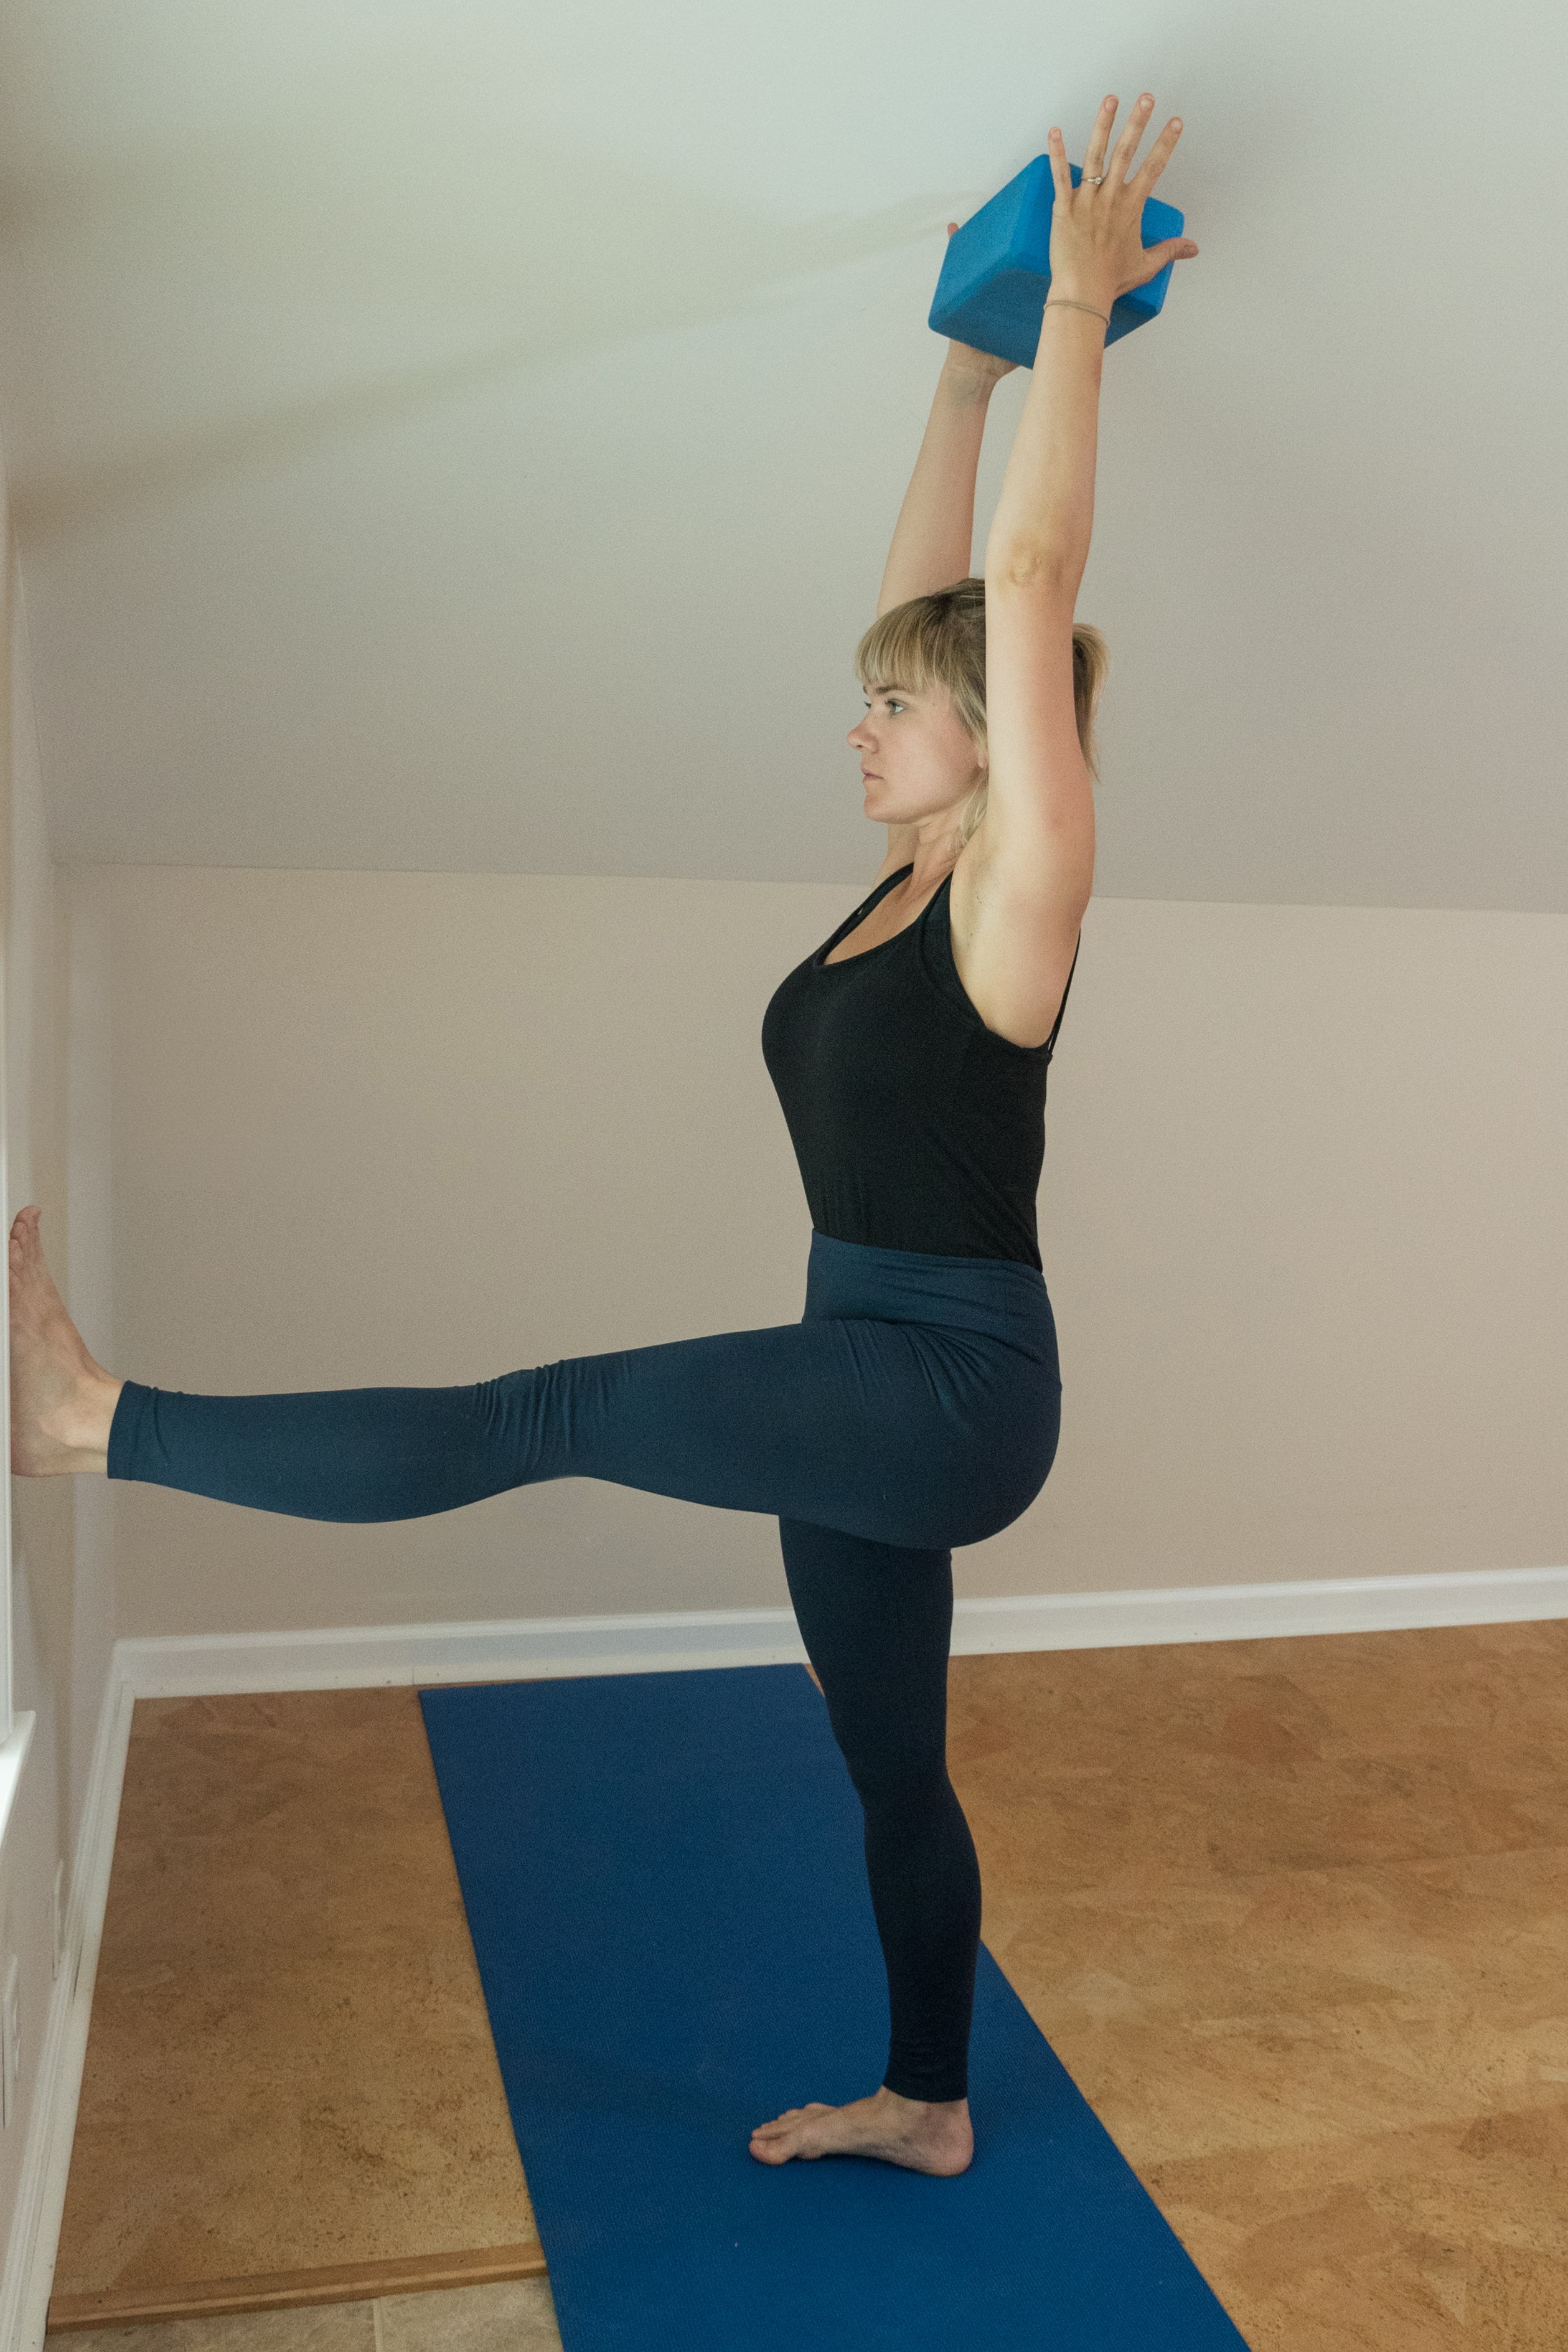 woman practicing preparation for handstand standing with arms over head in L-position with one leg on the wall